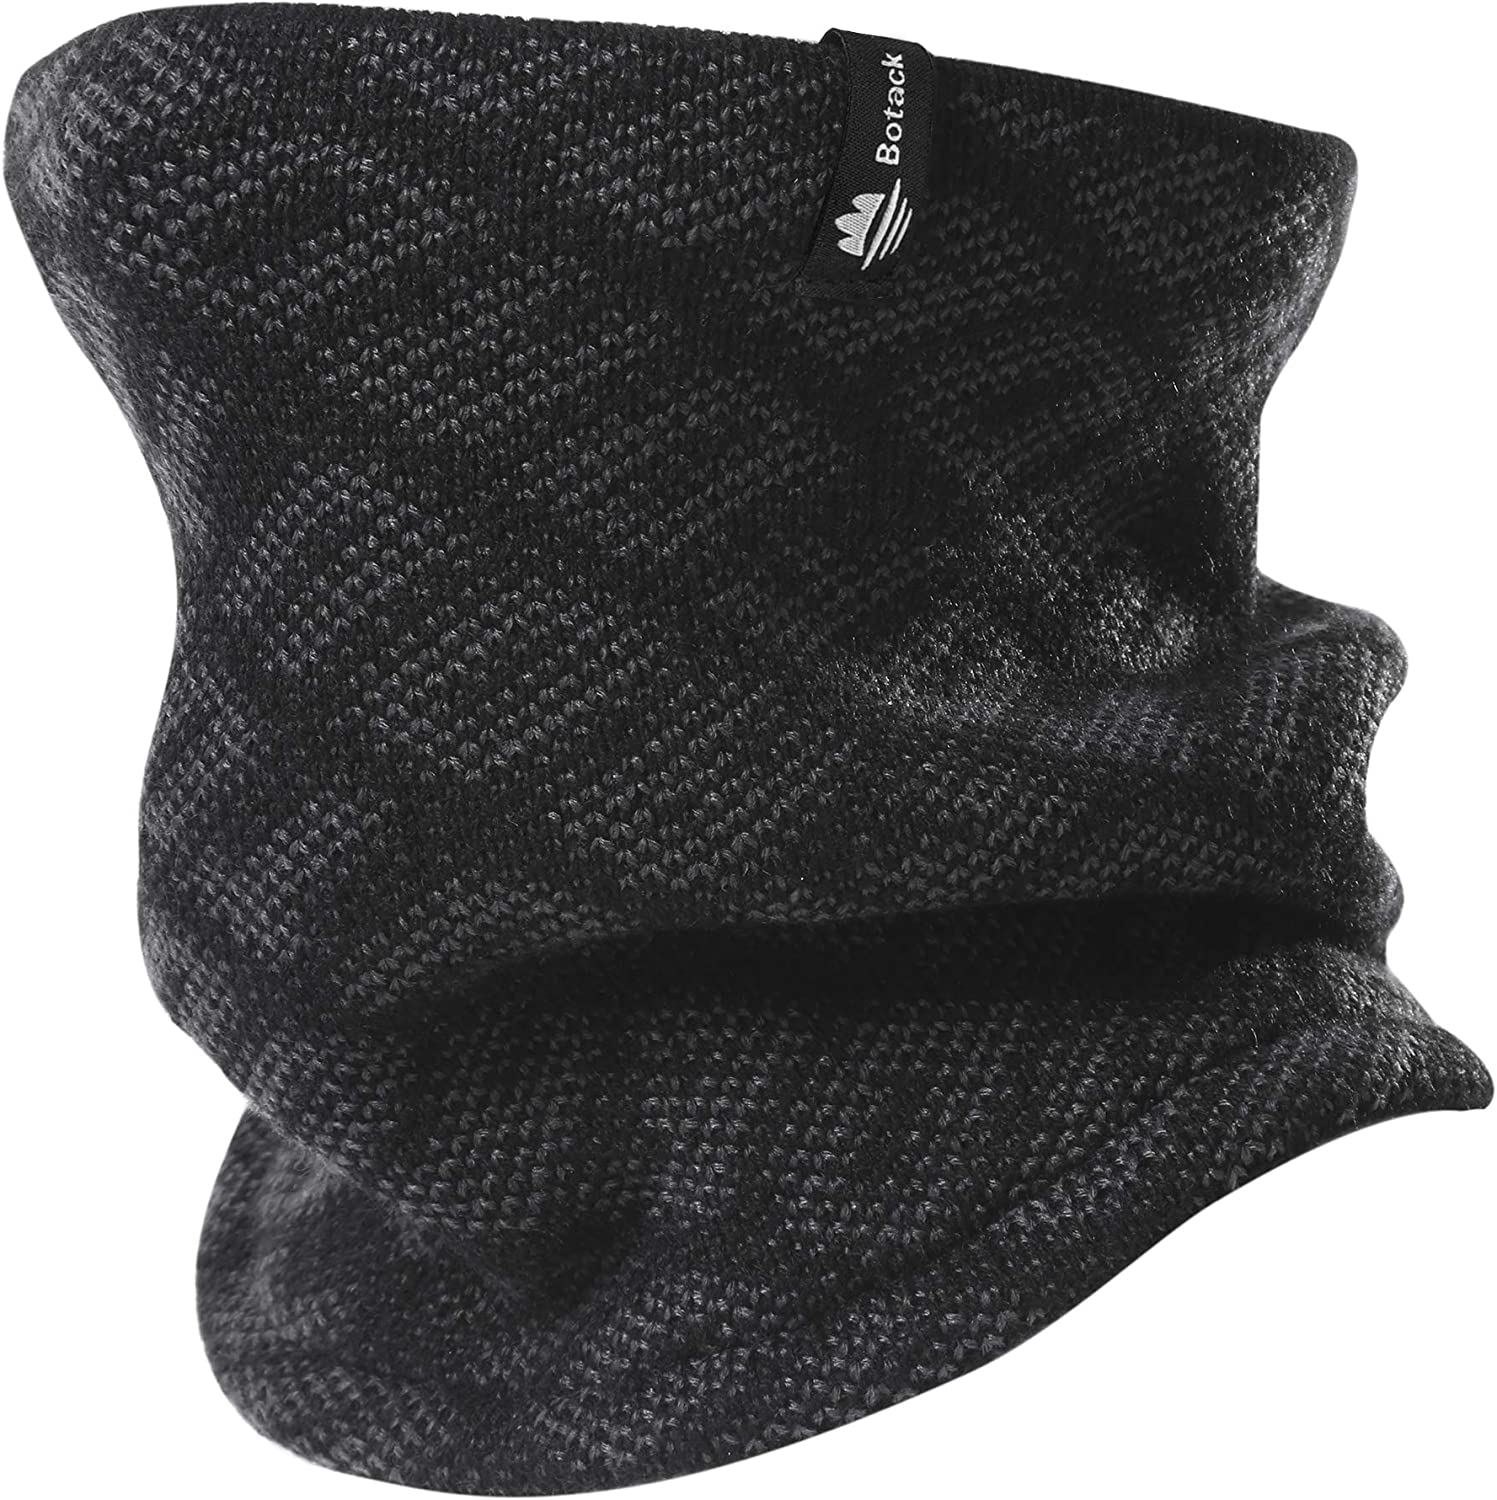 Fashion Windproof Neck Gaiter Warmer Face Mask for Cold Weather Winter Sport Ski